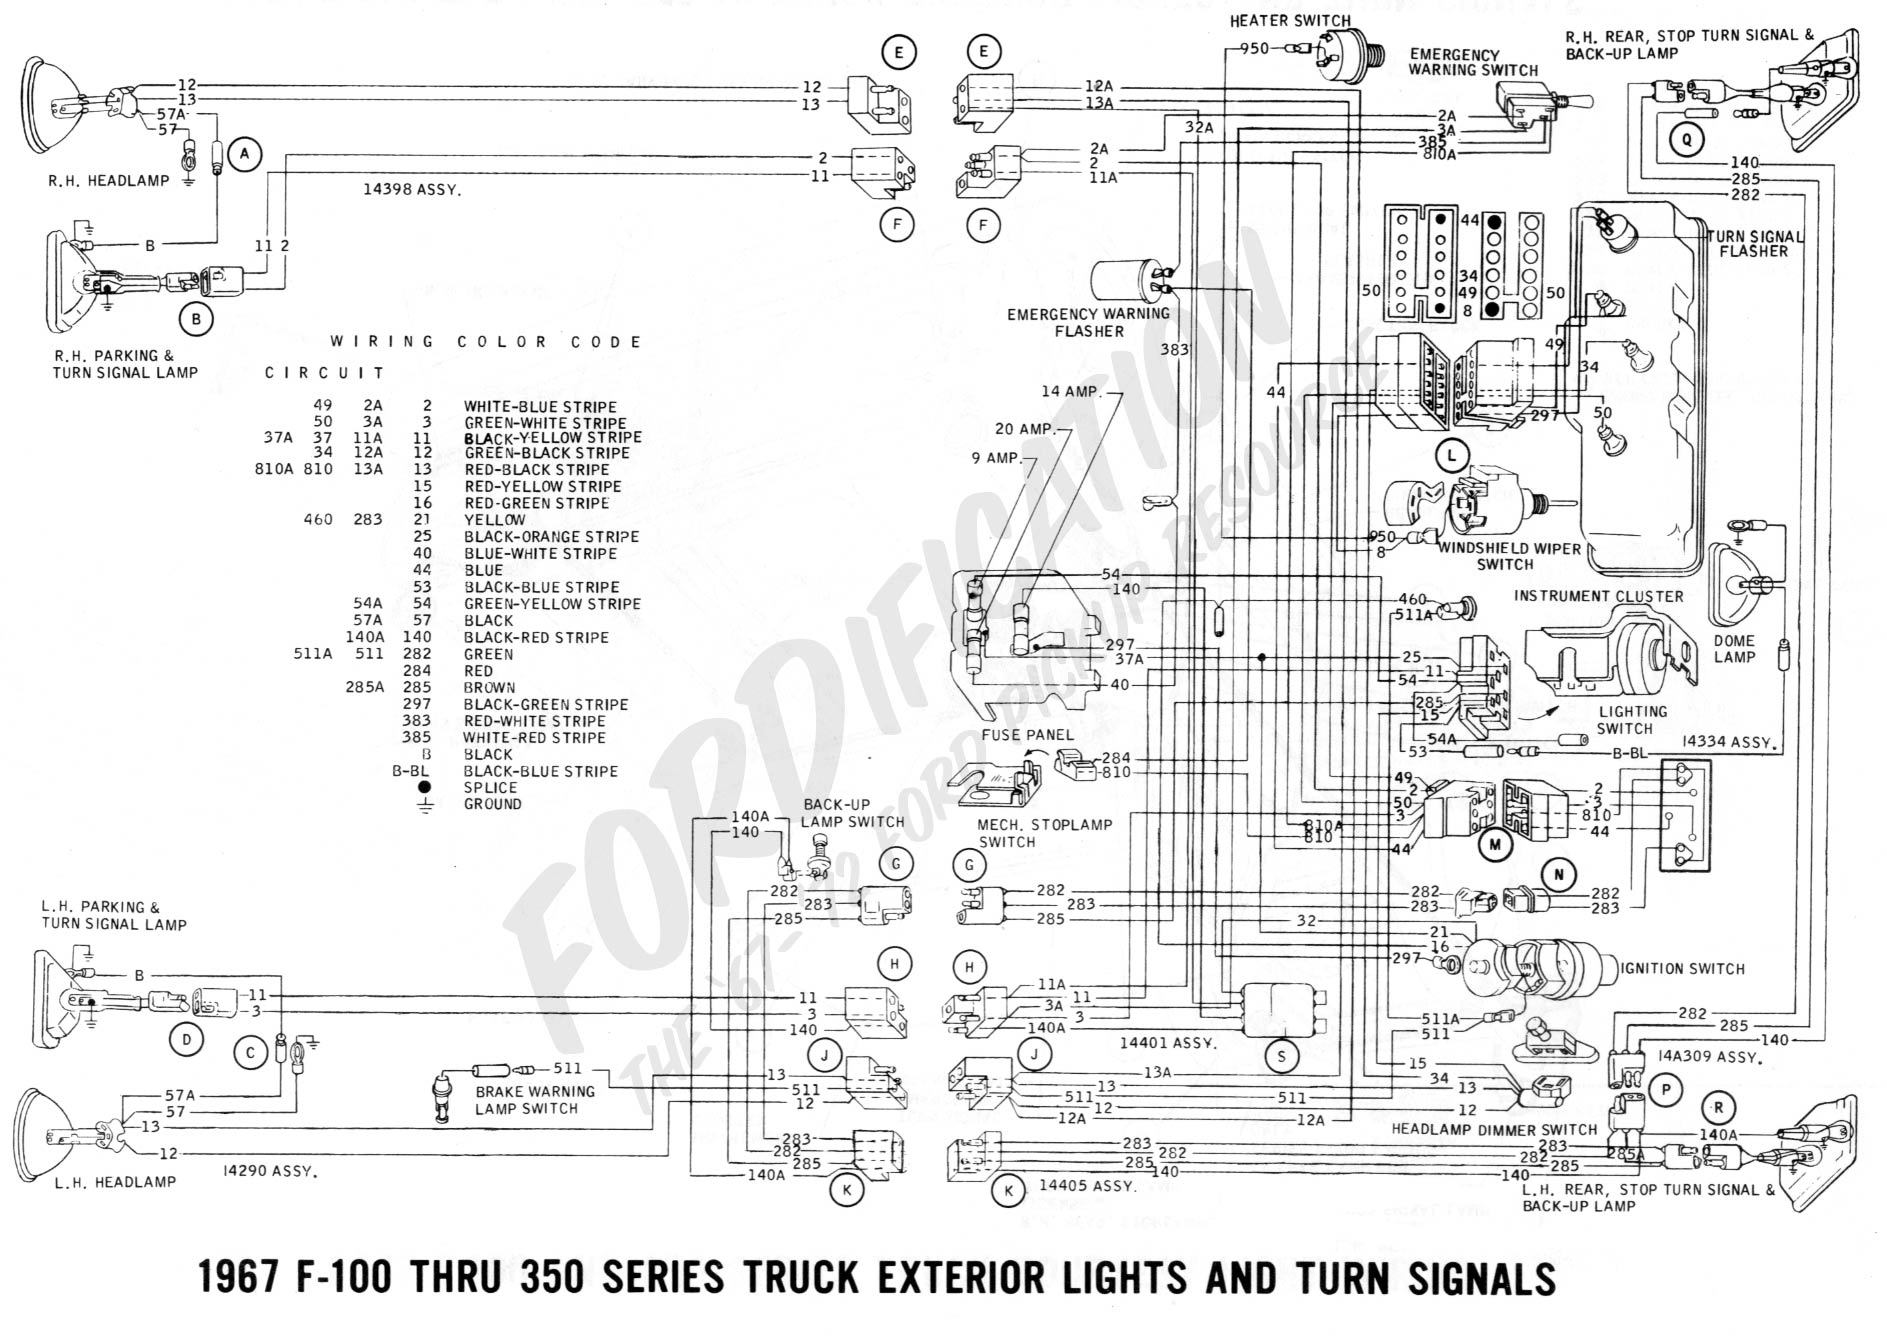 80 1967_exterior_lights_and_turn_signals_page_2_1db6c529c4c9567560e56d6320f993290ba5b803 1967 mustang wiring diagram efcaviation com 1968 ford mustang wiring diagram at soozxer.org